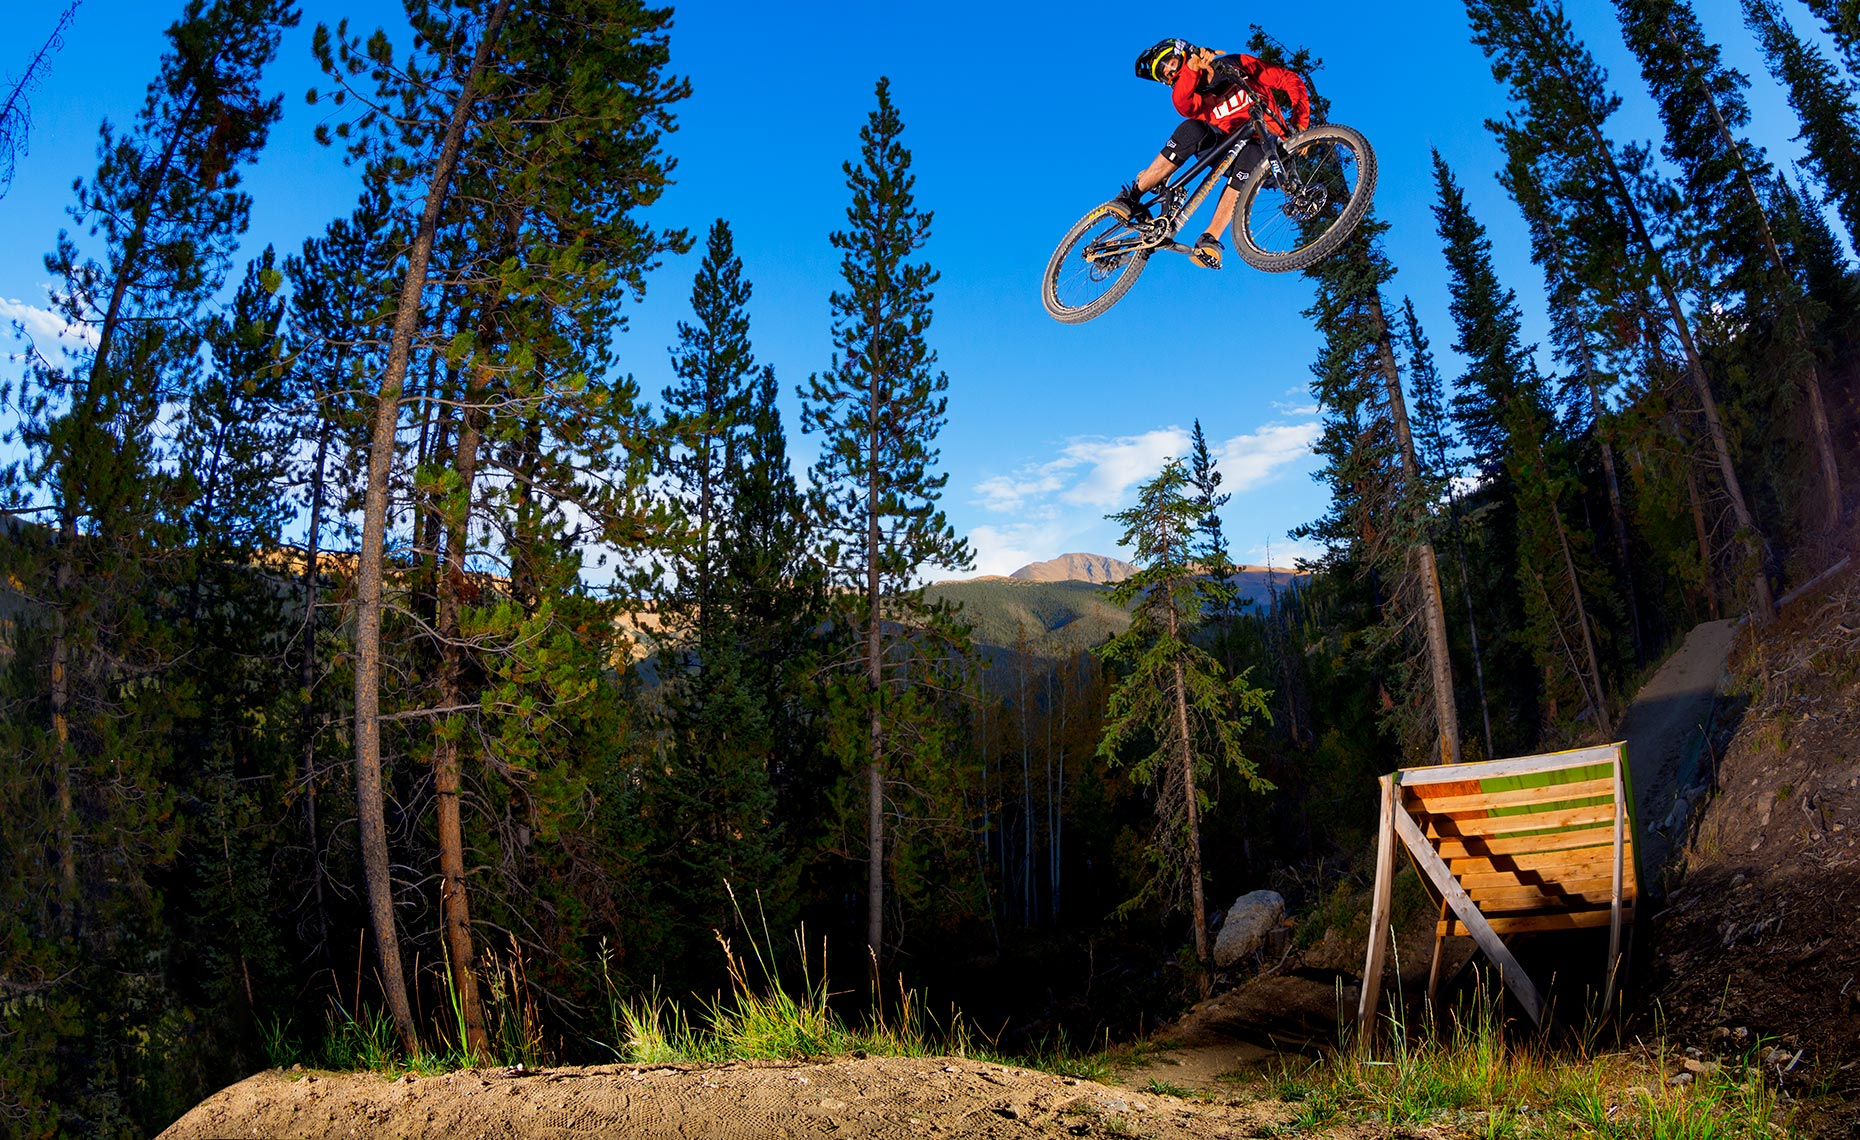 2431-PaulWeston-Trestle-Bike-Park-Chris-Wellhausen-31-RGB